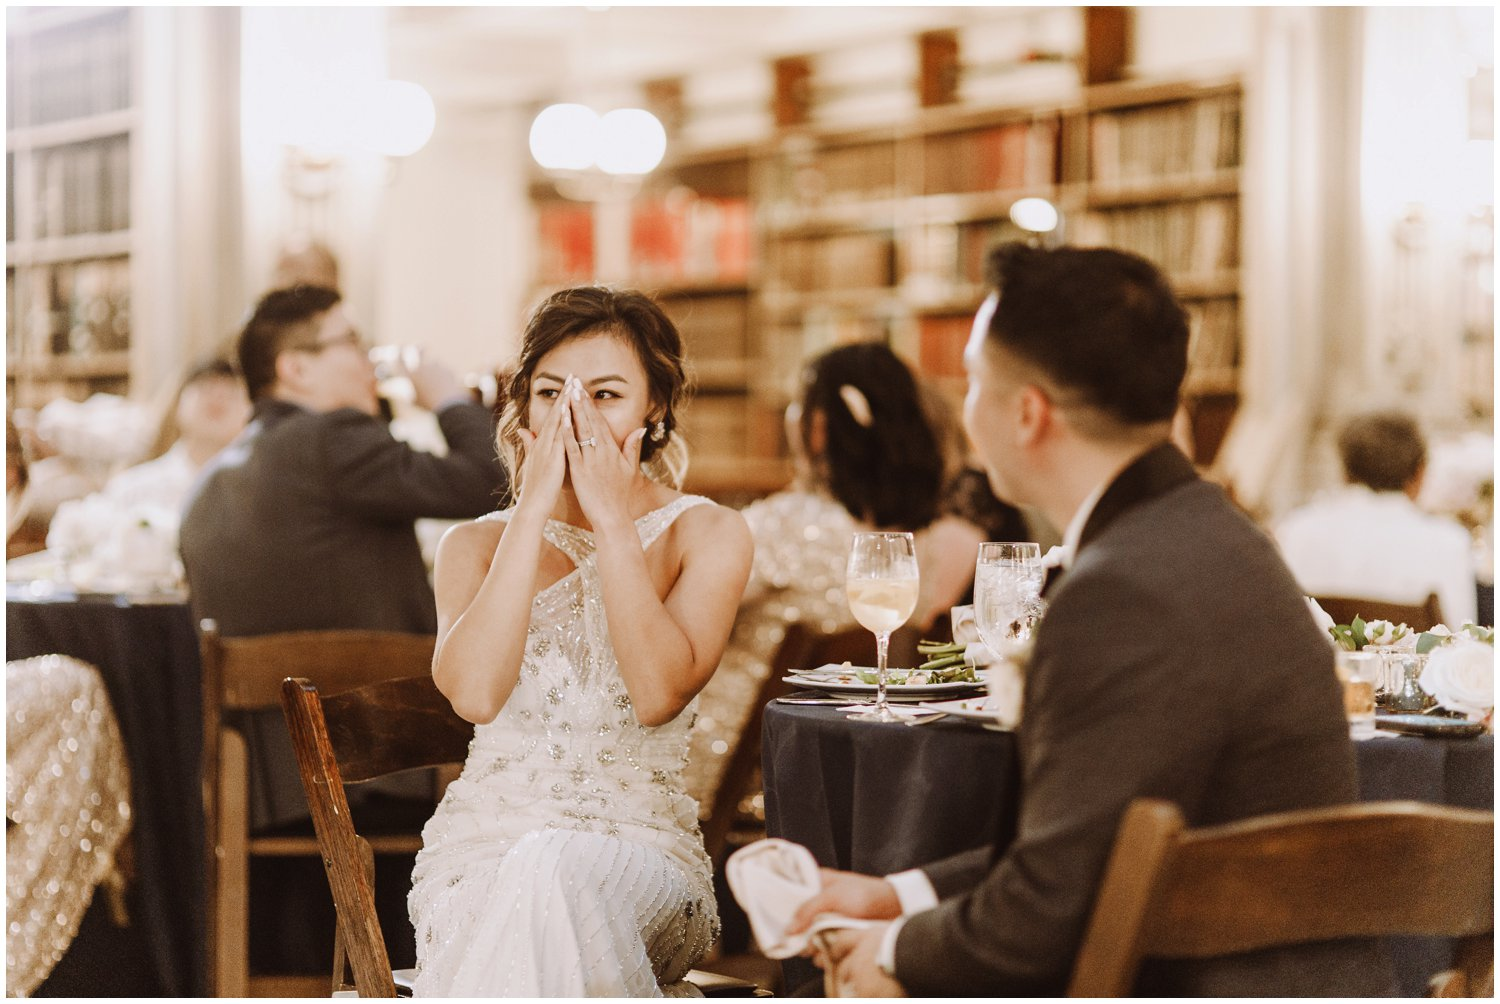 Peabody Library Wedding reception | Baltimore Wedding Photographer | Art Deco Wedding Photography | Intimate Emotional Wedding Story | Kate Ann Photography